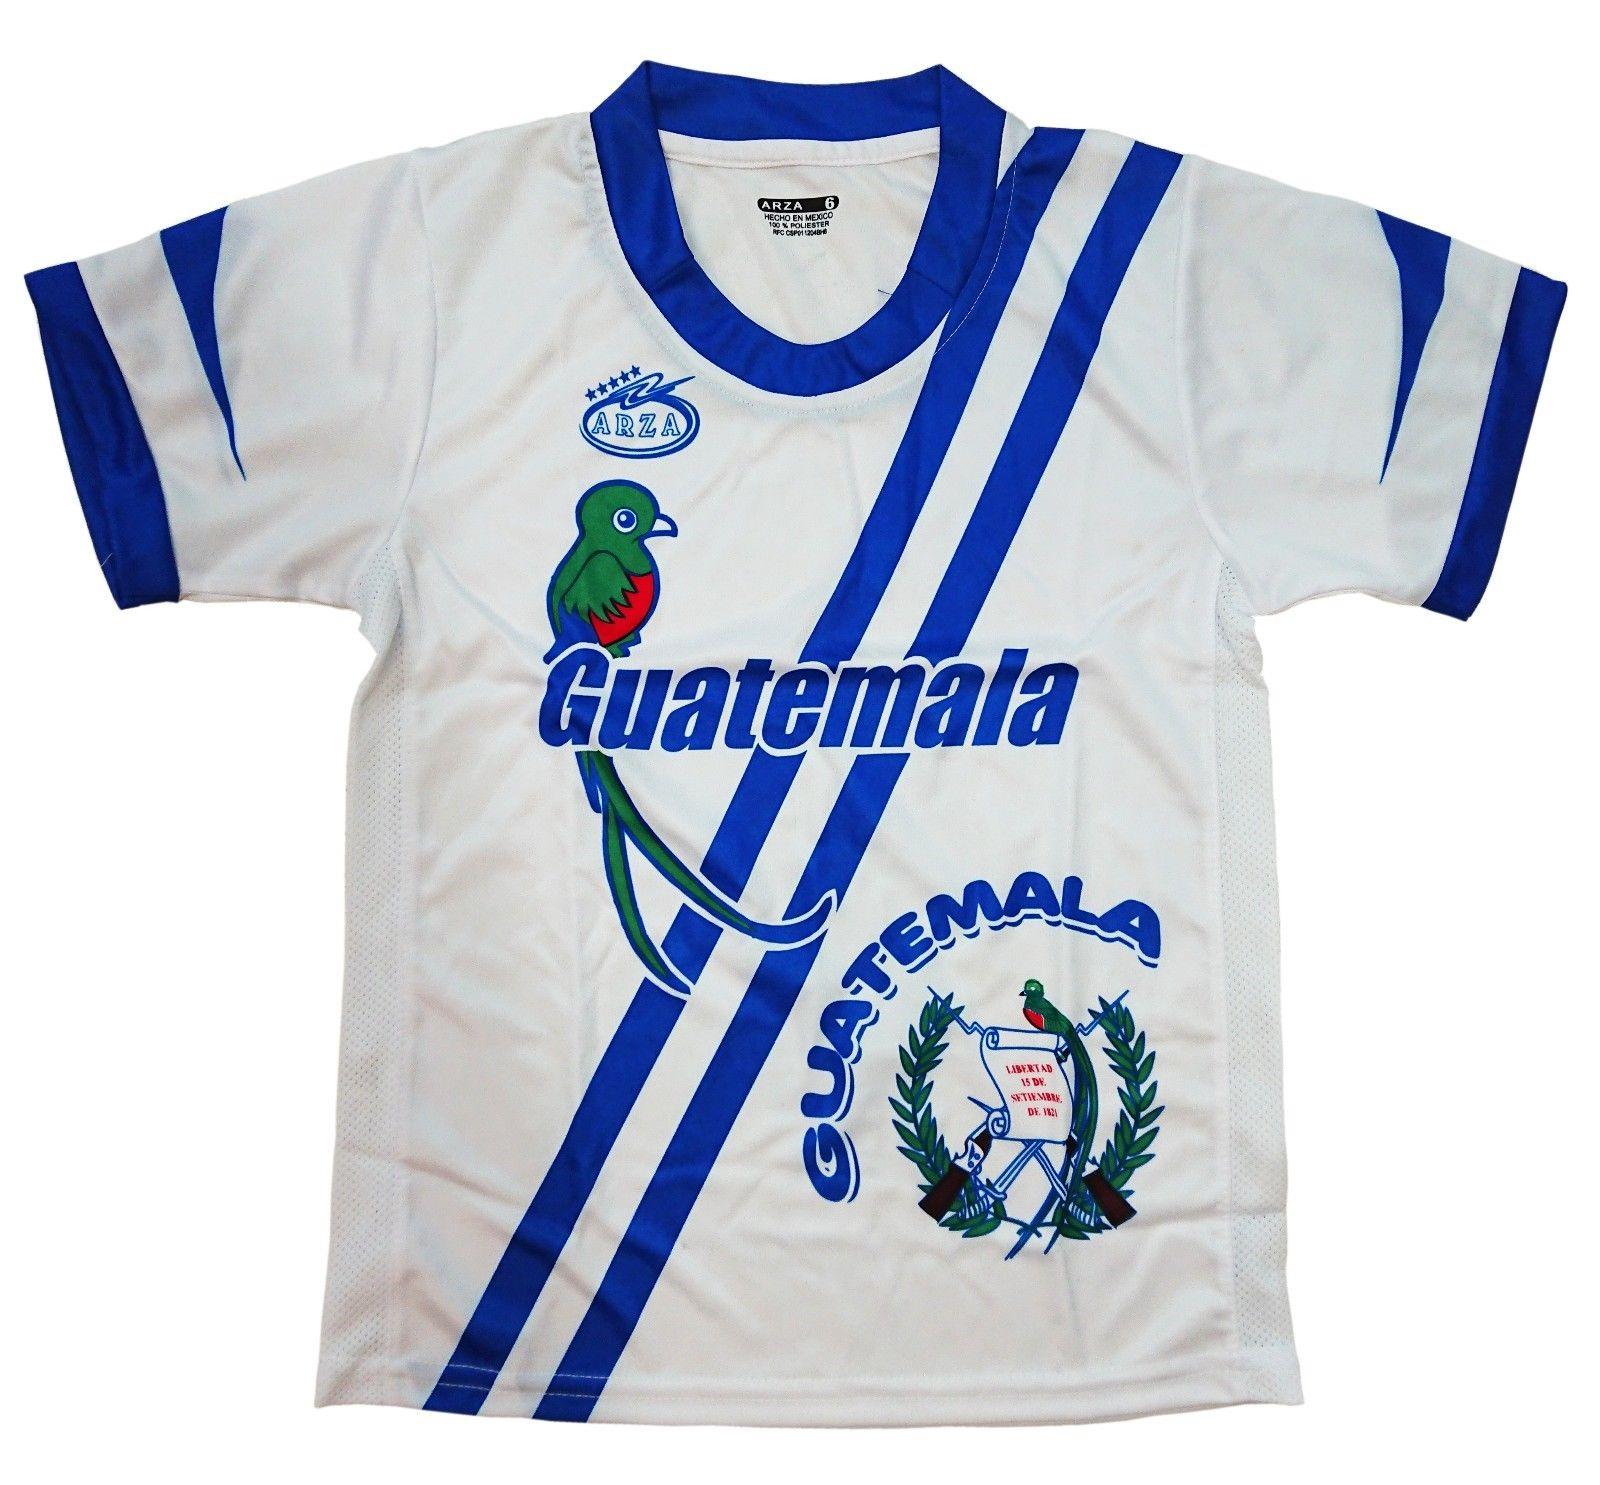 f80a520a3d2 ... Guatemala Home Away youth and Adult Soccer Uniform Arza Exclusive  Design ...